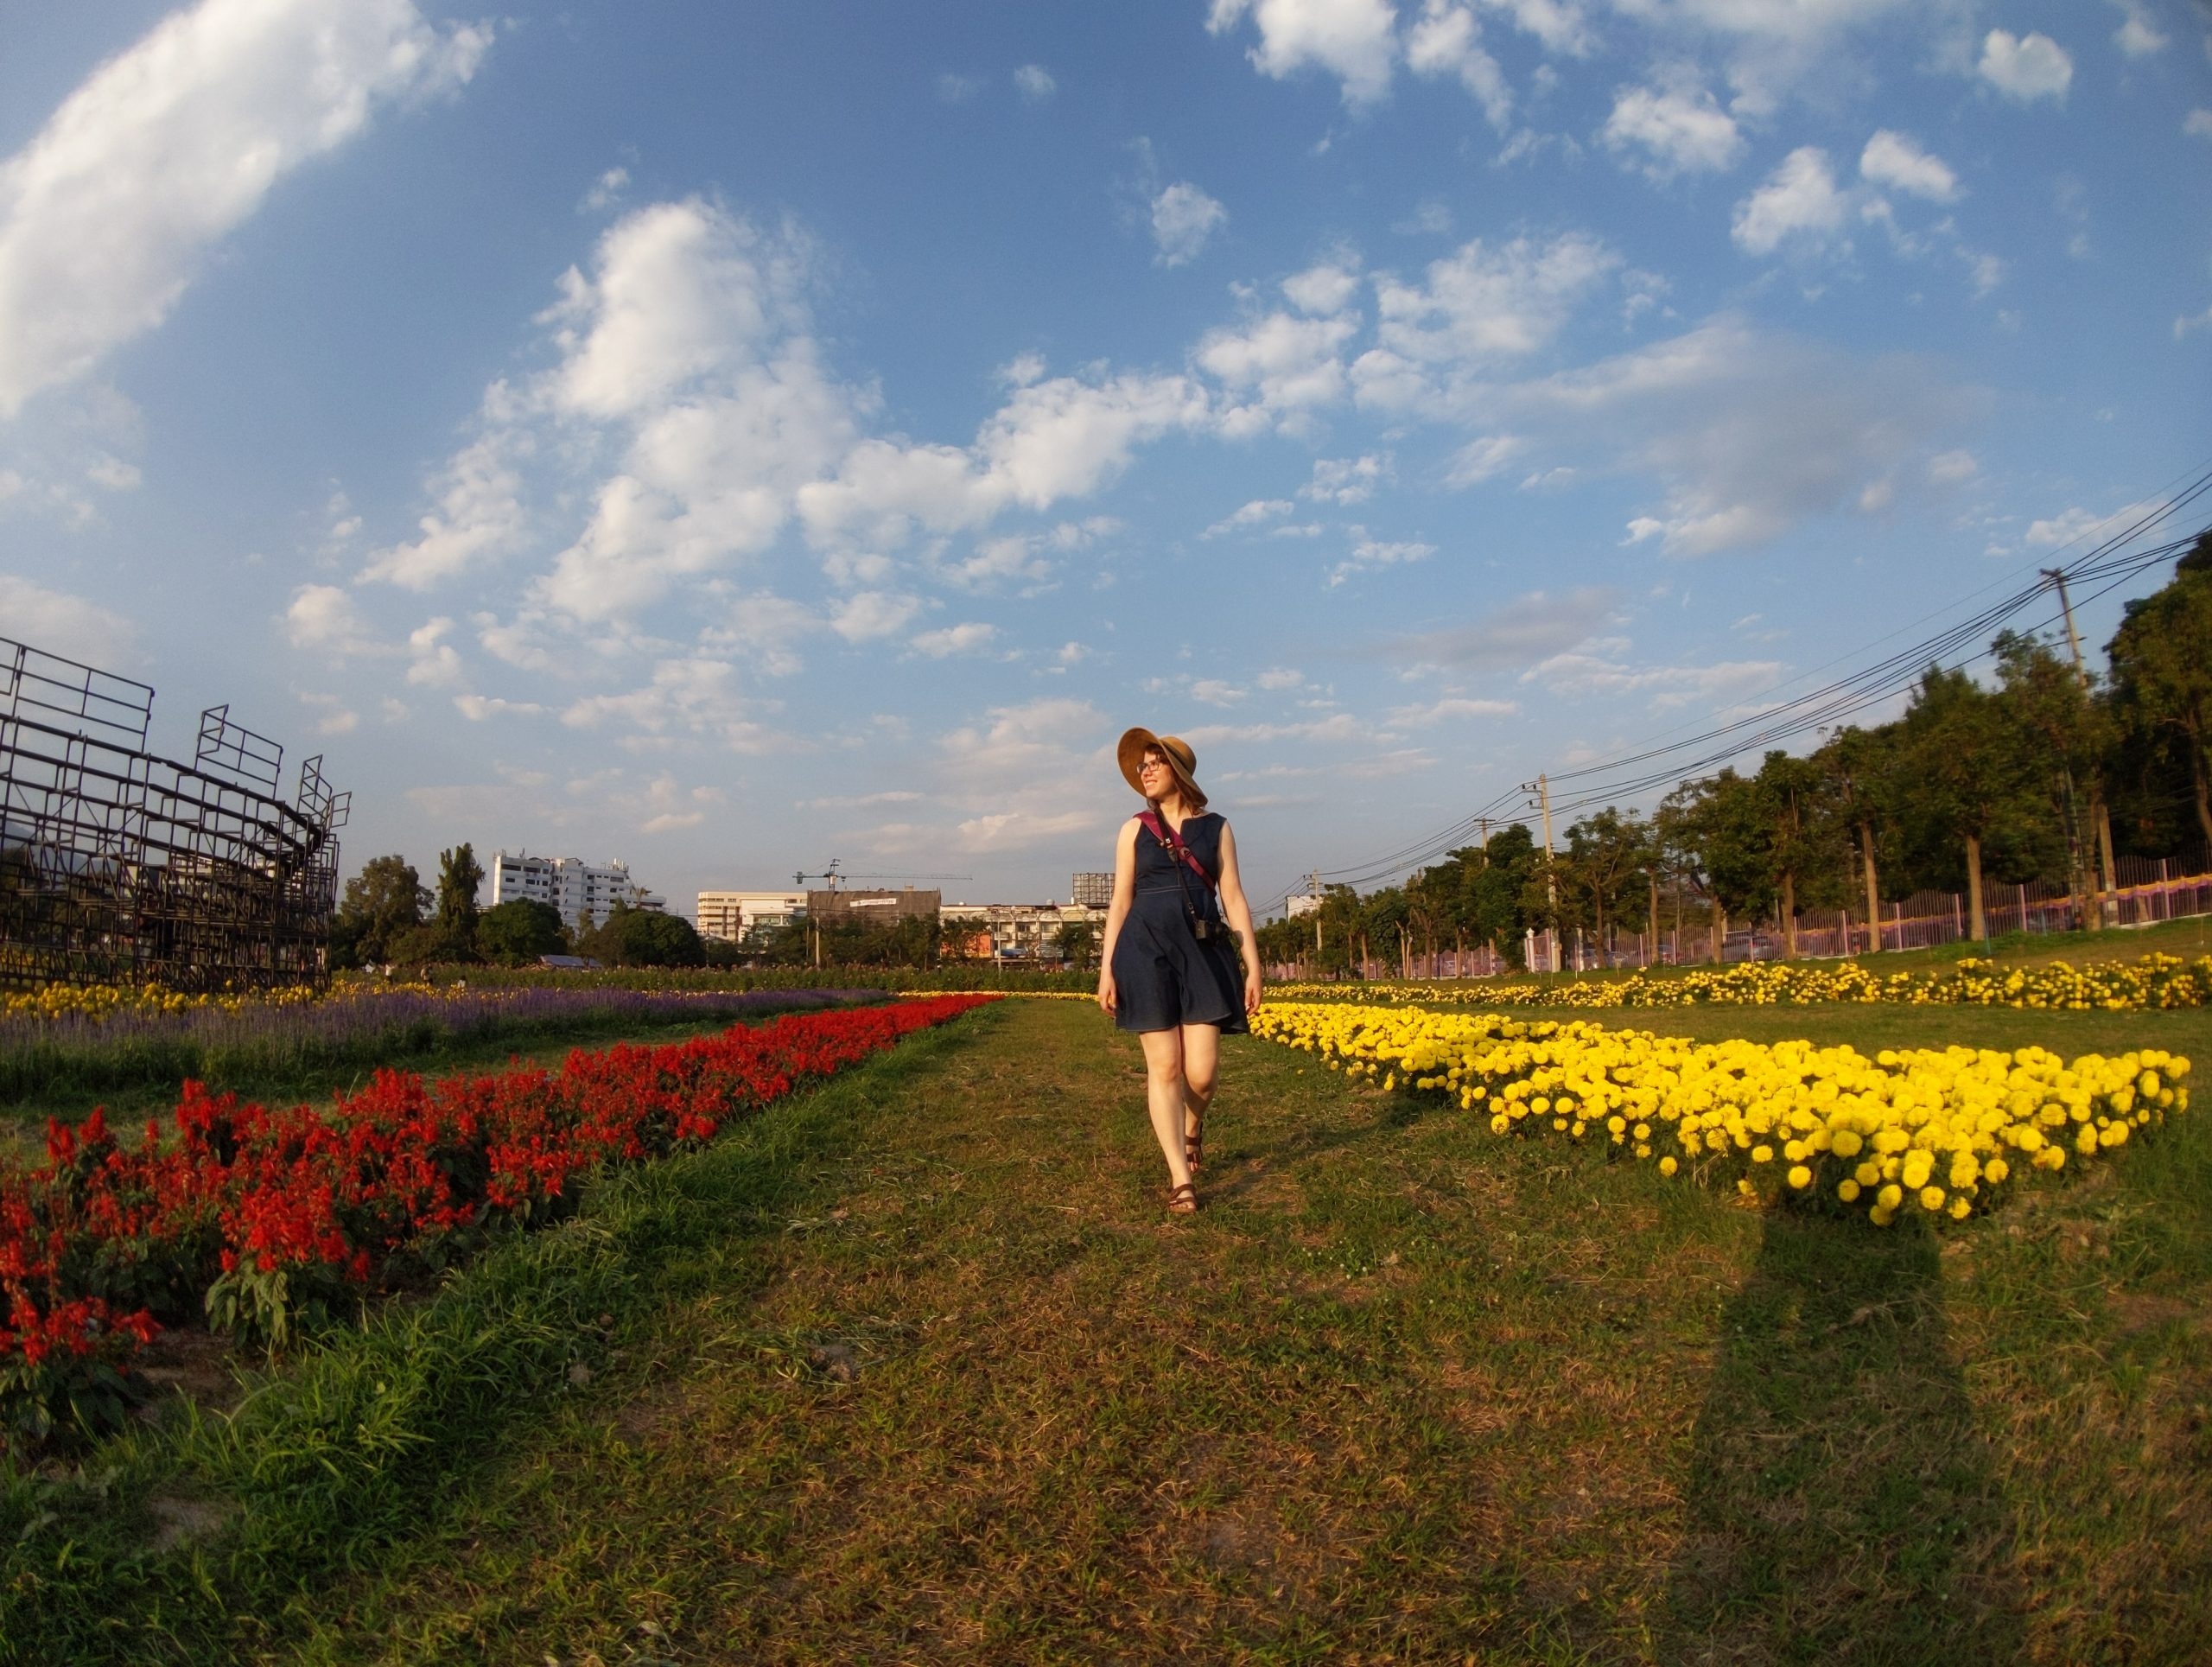 Woman walking in sunshine in field of flowers